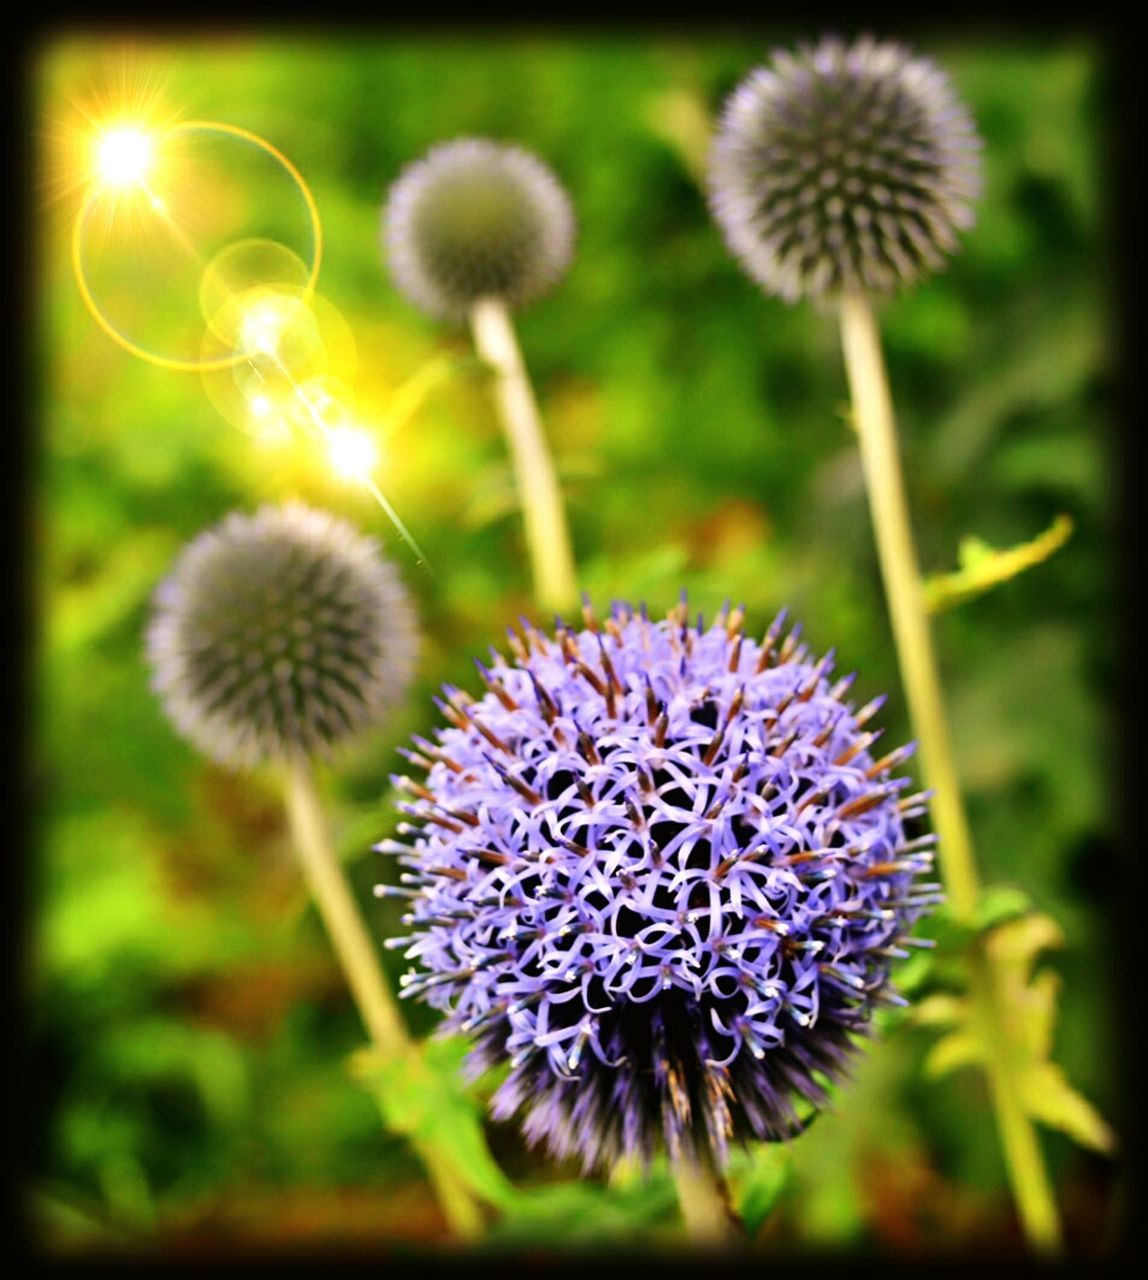 flower, growth, nature, plant, beauty in nature, no people, thistle, flower head, close-up, fragility, outdoors, day, freshness